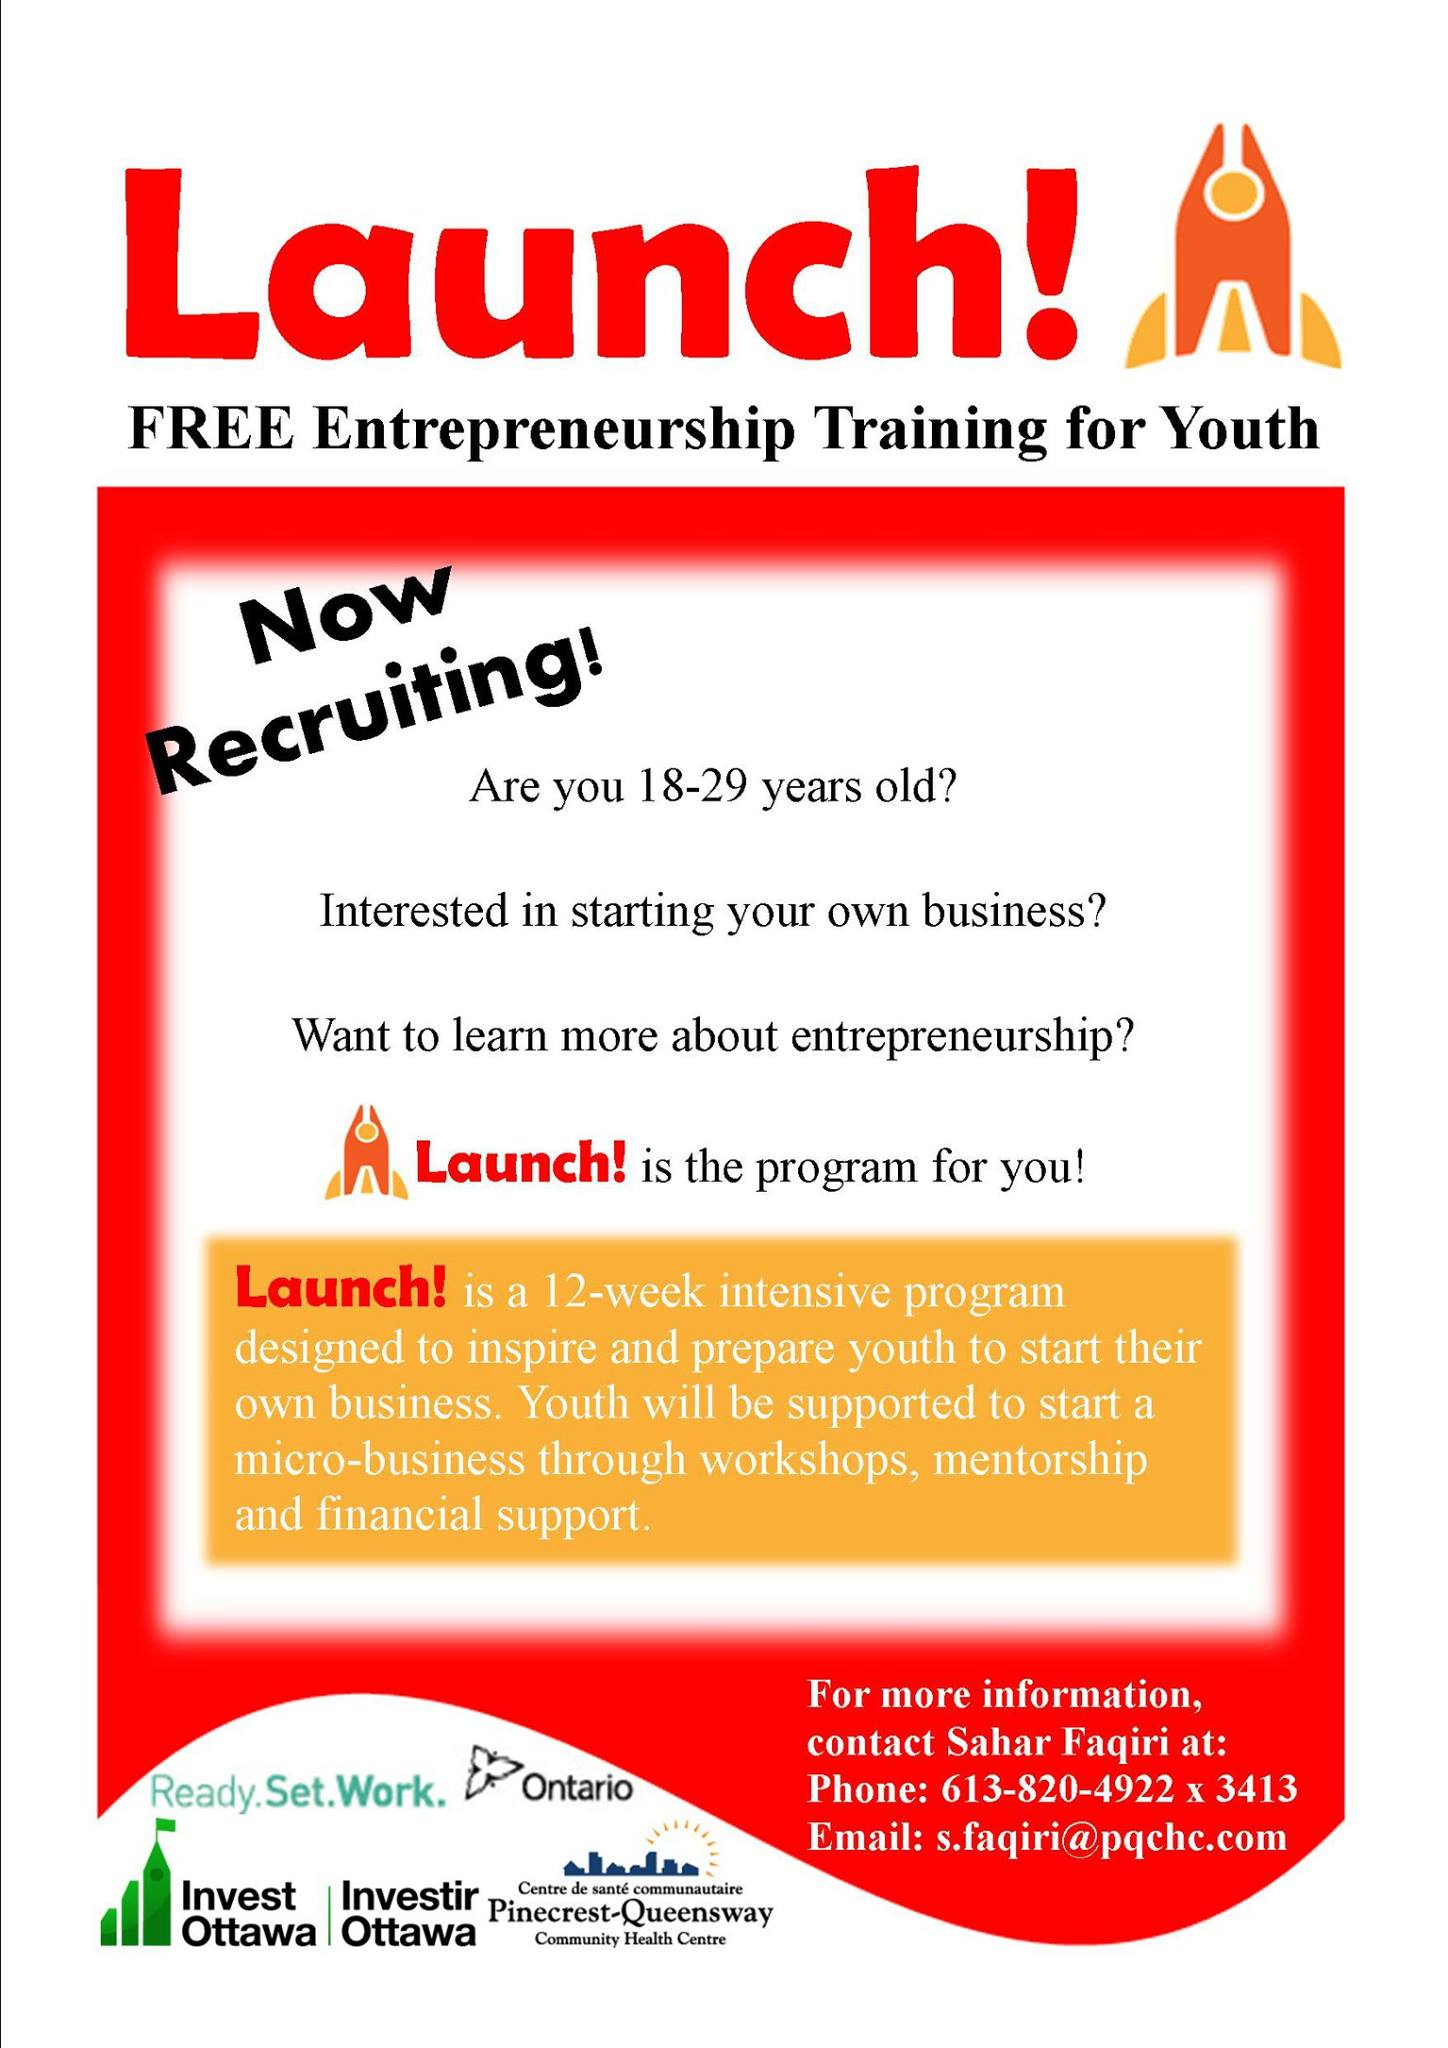 launch free business program for youth ottawa.jpg